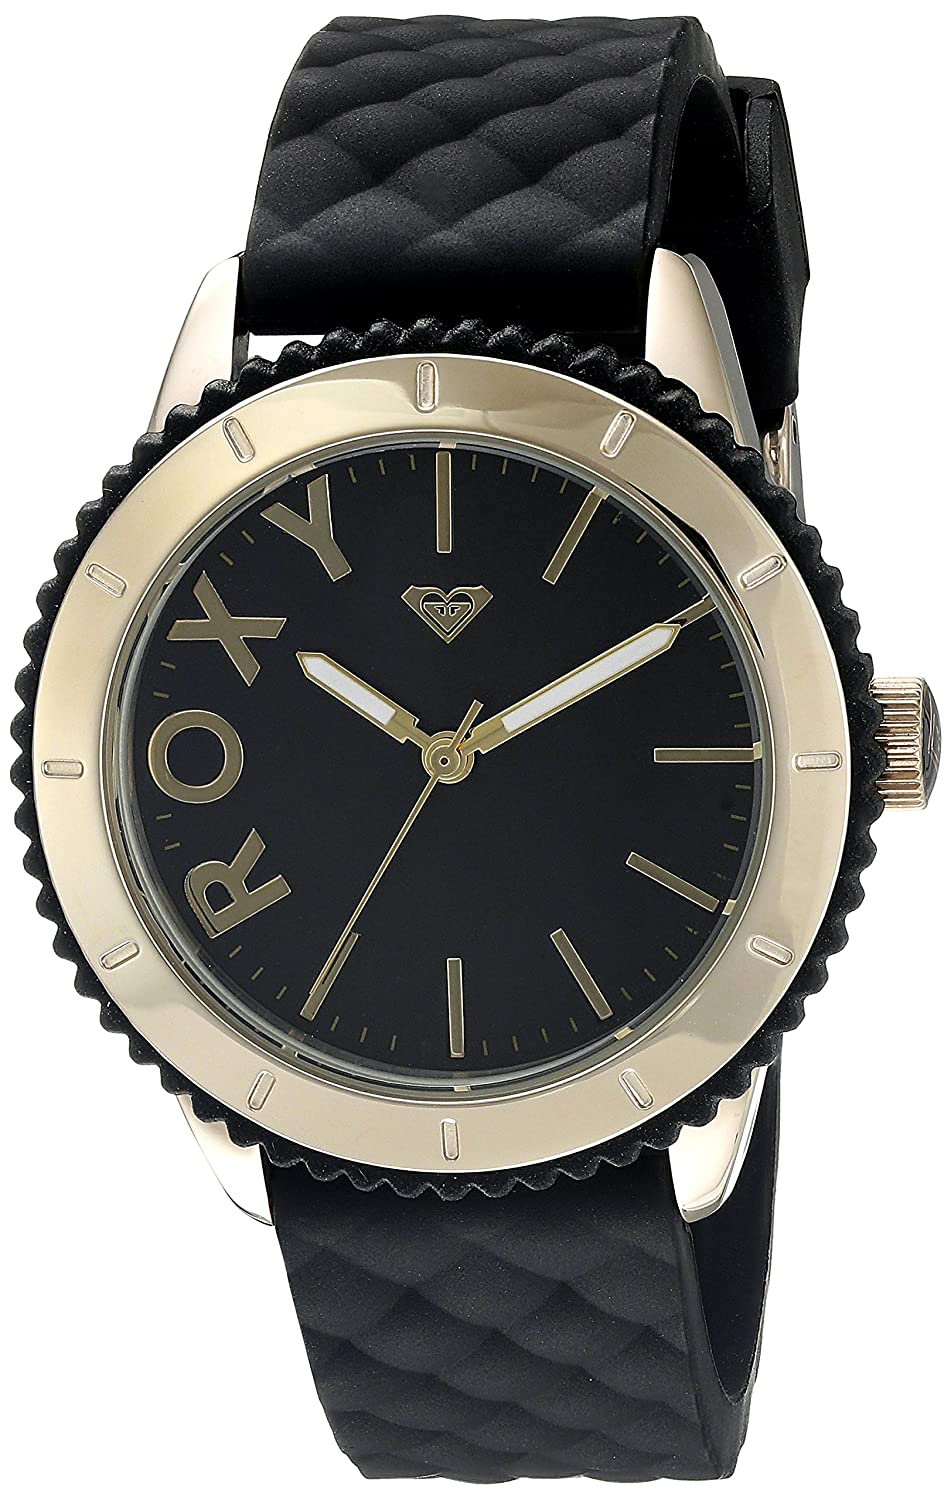 Roxy Damen-Armbanduhr The Del Mar Analog Silikon Schwarz RX-1013BKRG